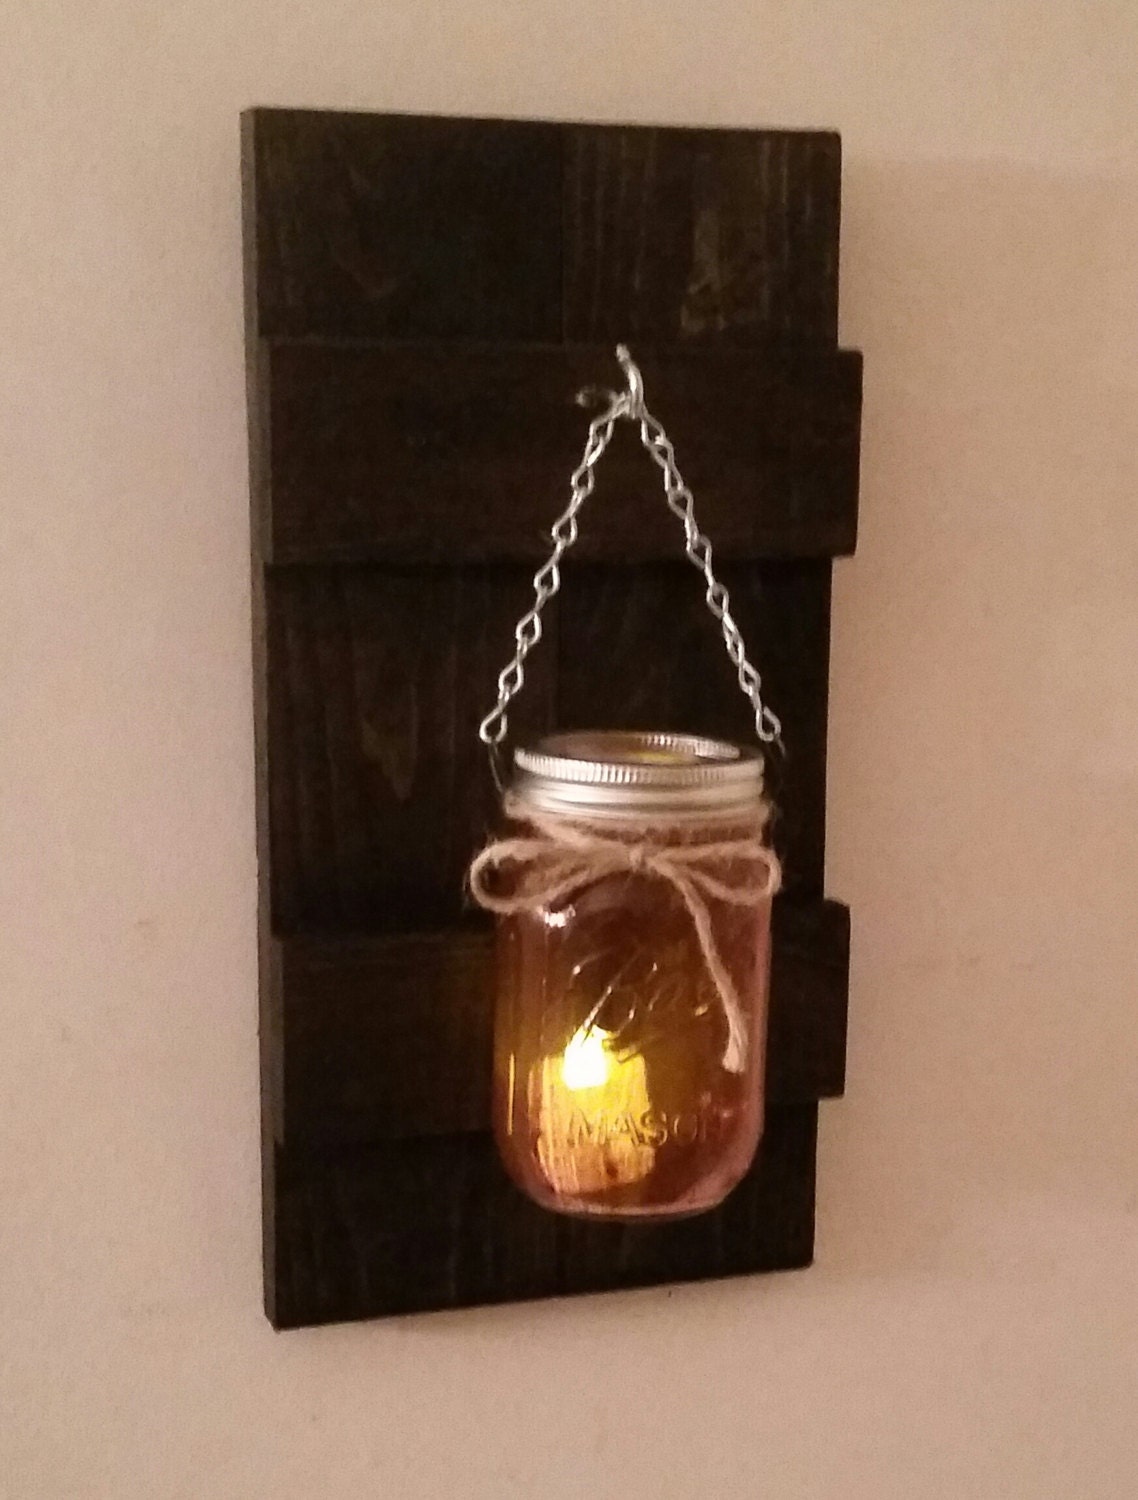 Rustic Wall Sconce With Ball Mason Jar and Battery Operated Candle Holder Candles - Zeppy.io